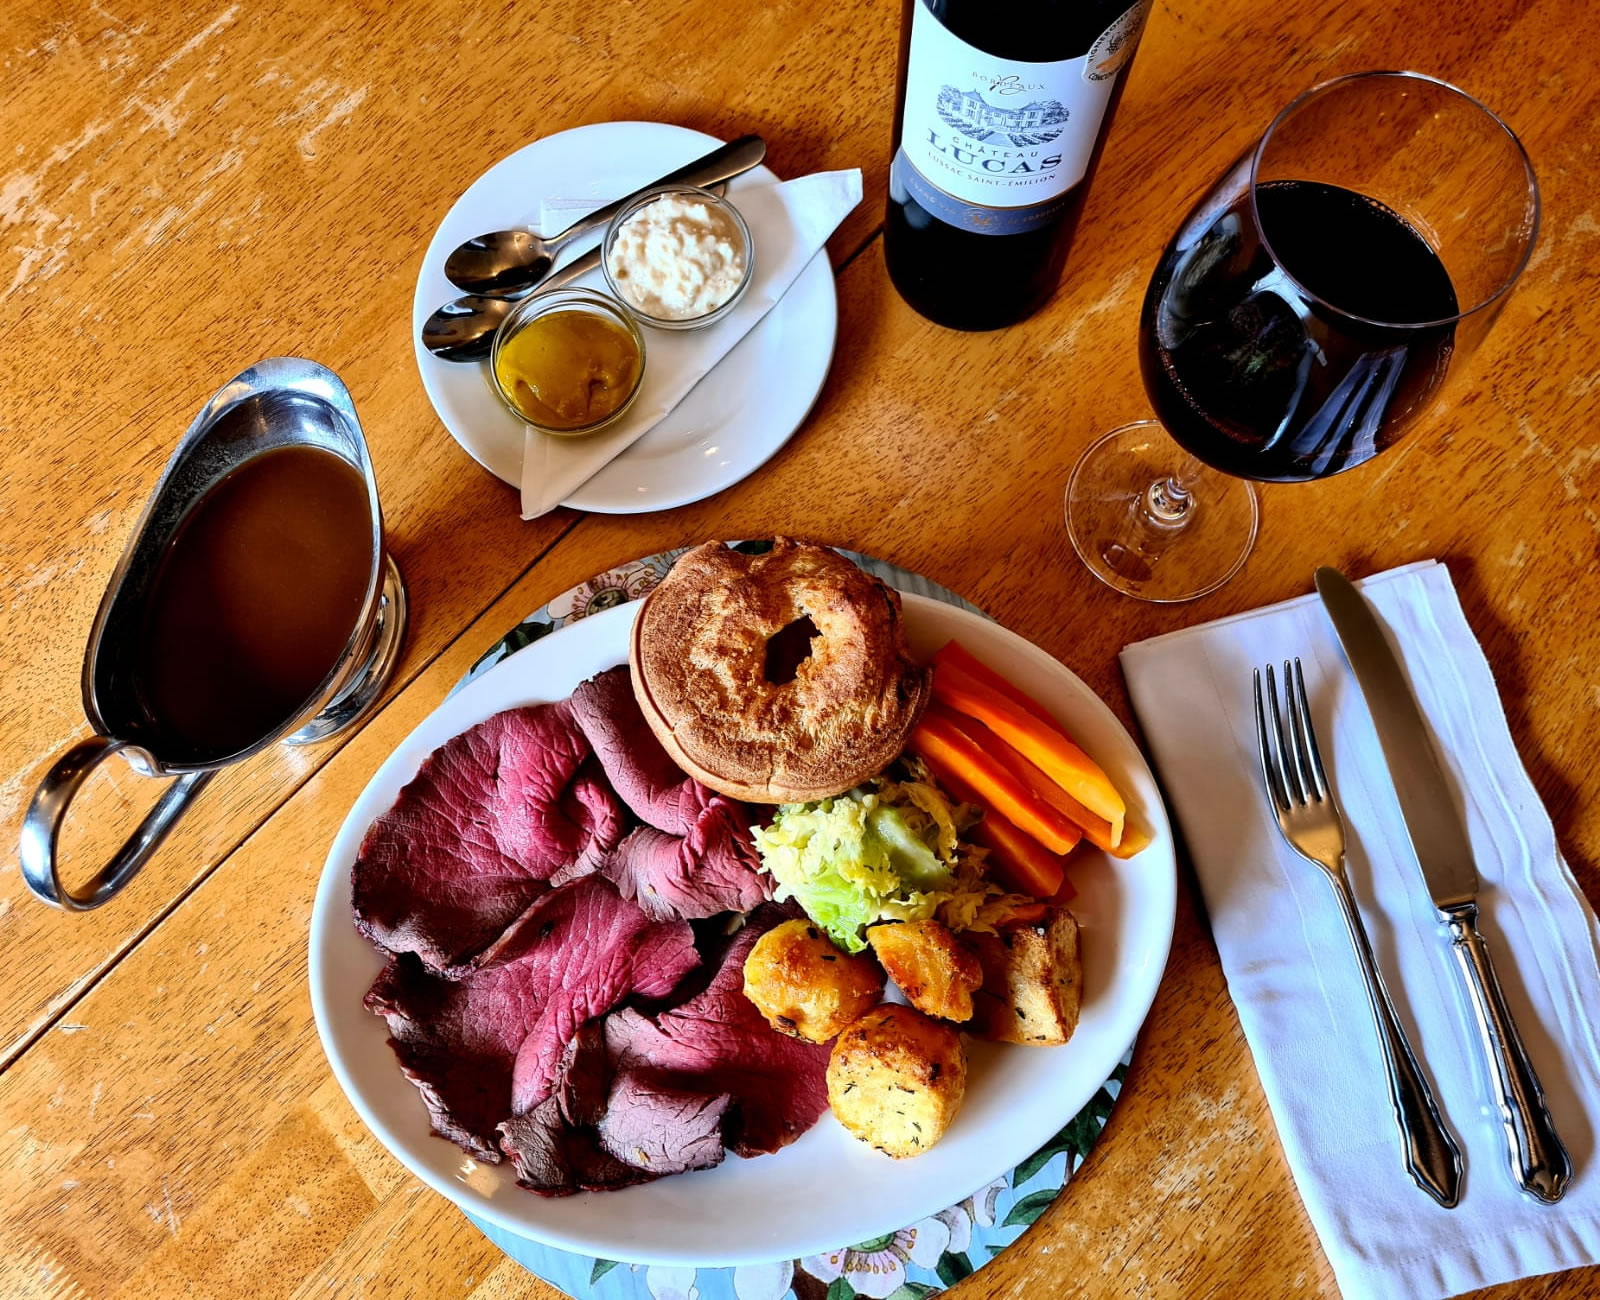 Roast Beef Meal - Old Crown Pub Weybridge